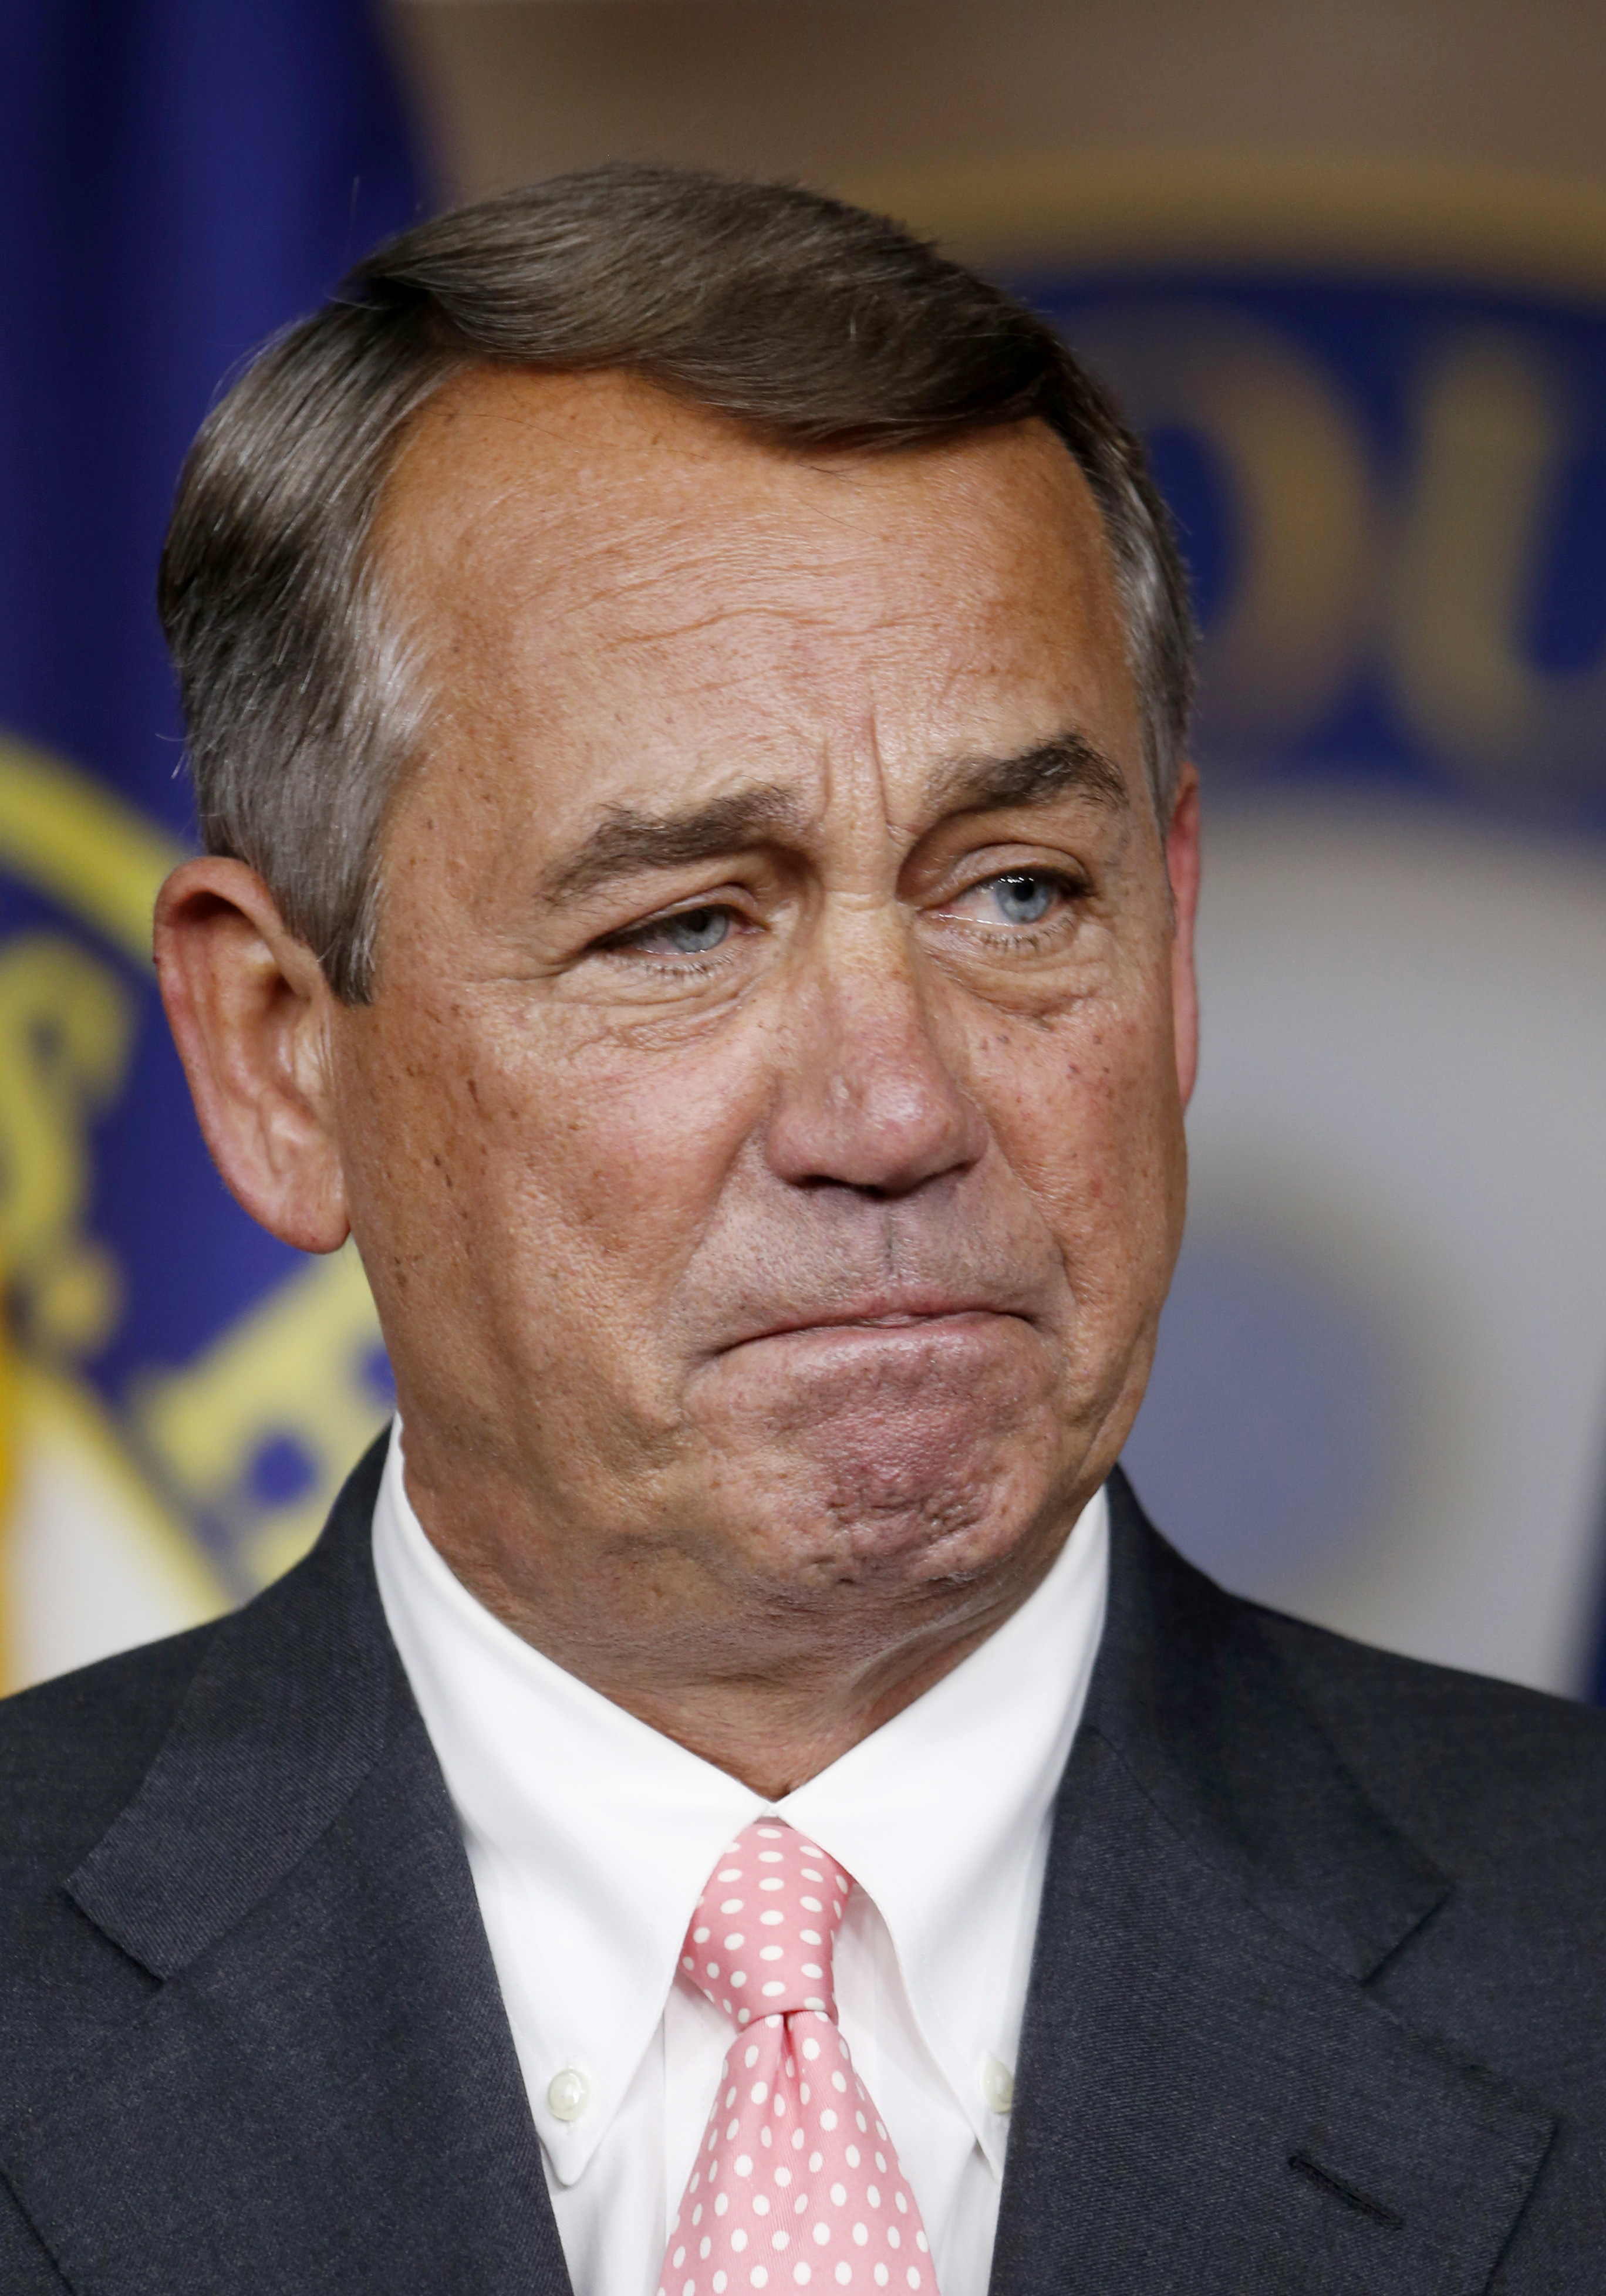 House Speaker John Boehner of Ohio listens to a question during a news conference on Capitol Hill  in Washington, Friday, Sept. 25, 2015. In a stunning move, Boehner informed fellow Republicans on Friday that he would resign from Congress at the end of October, stepping aside in the face of hardline conservative opposition that threatened an institutional crisis. (AP Photo/Steve Helber)